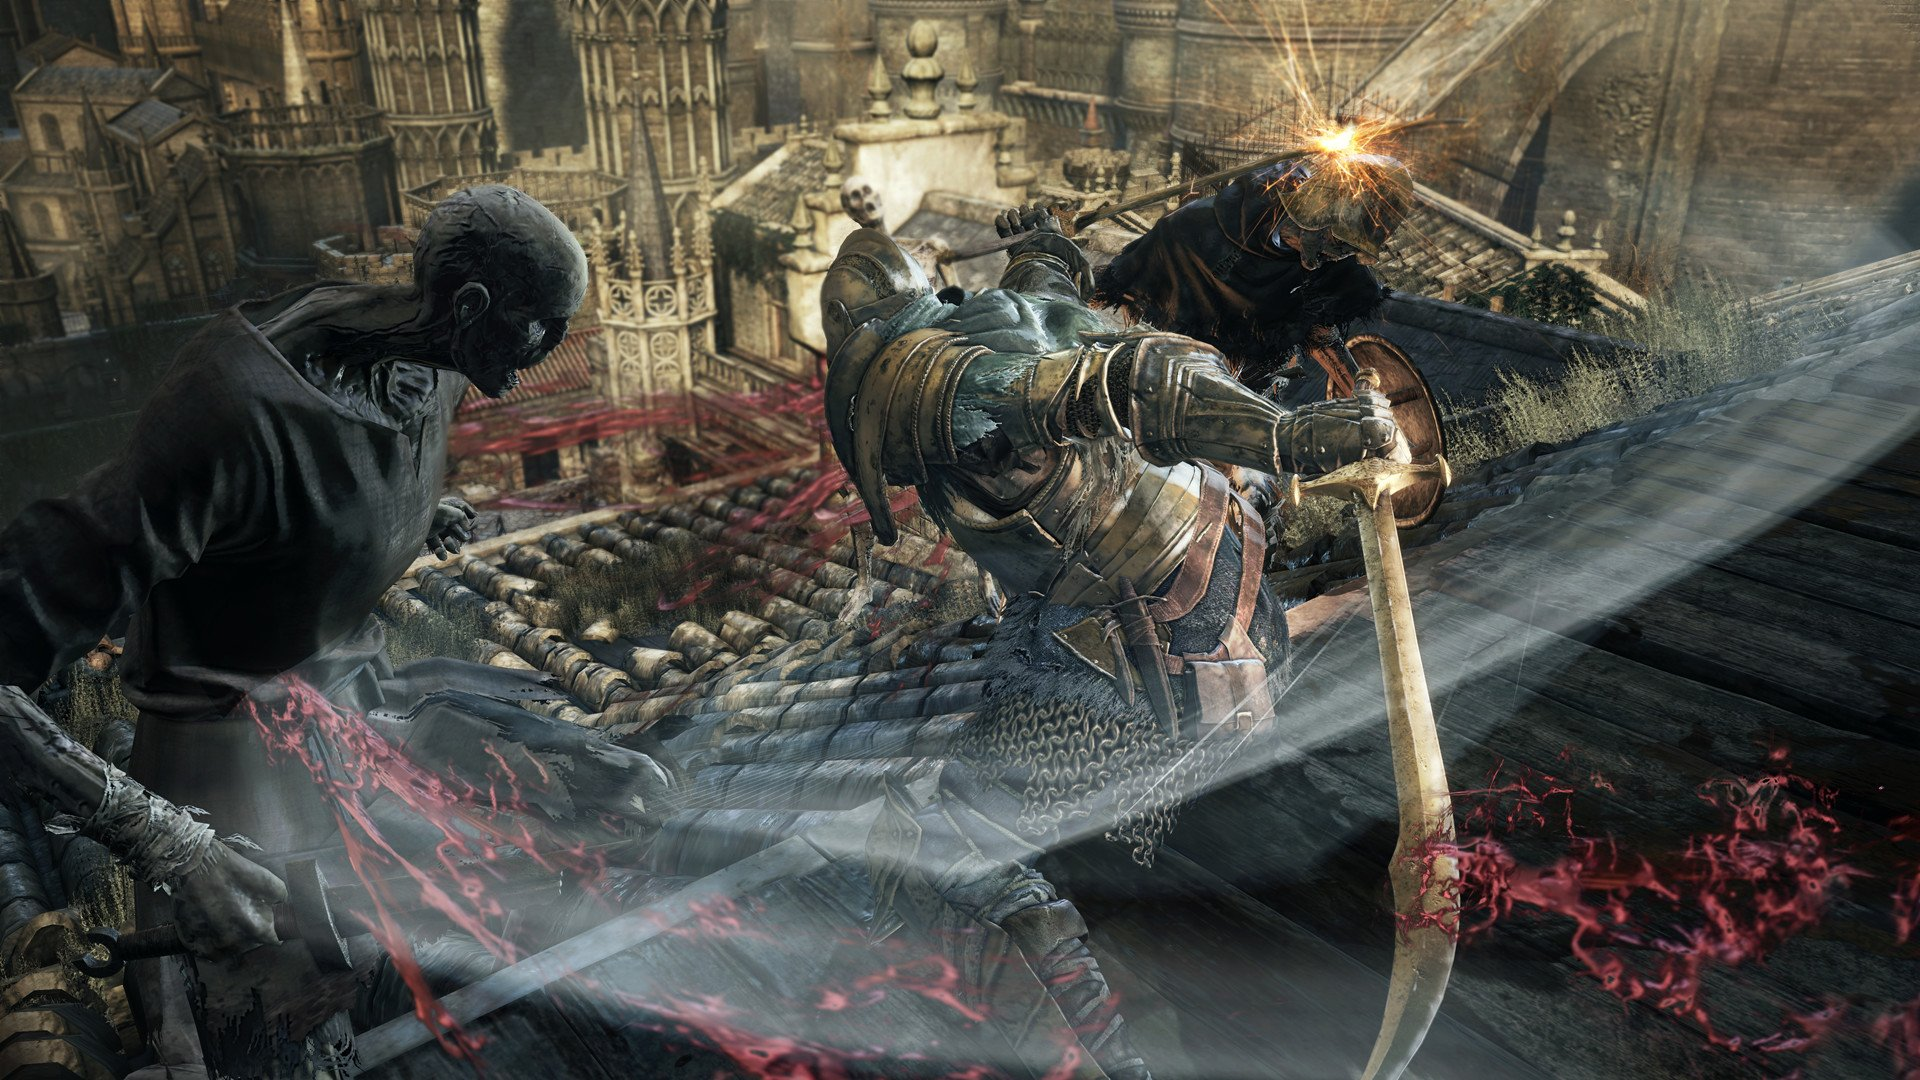 The Dark Souls series has sold over 27 million copies